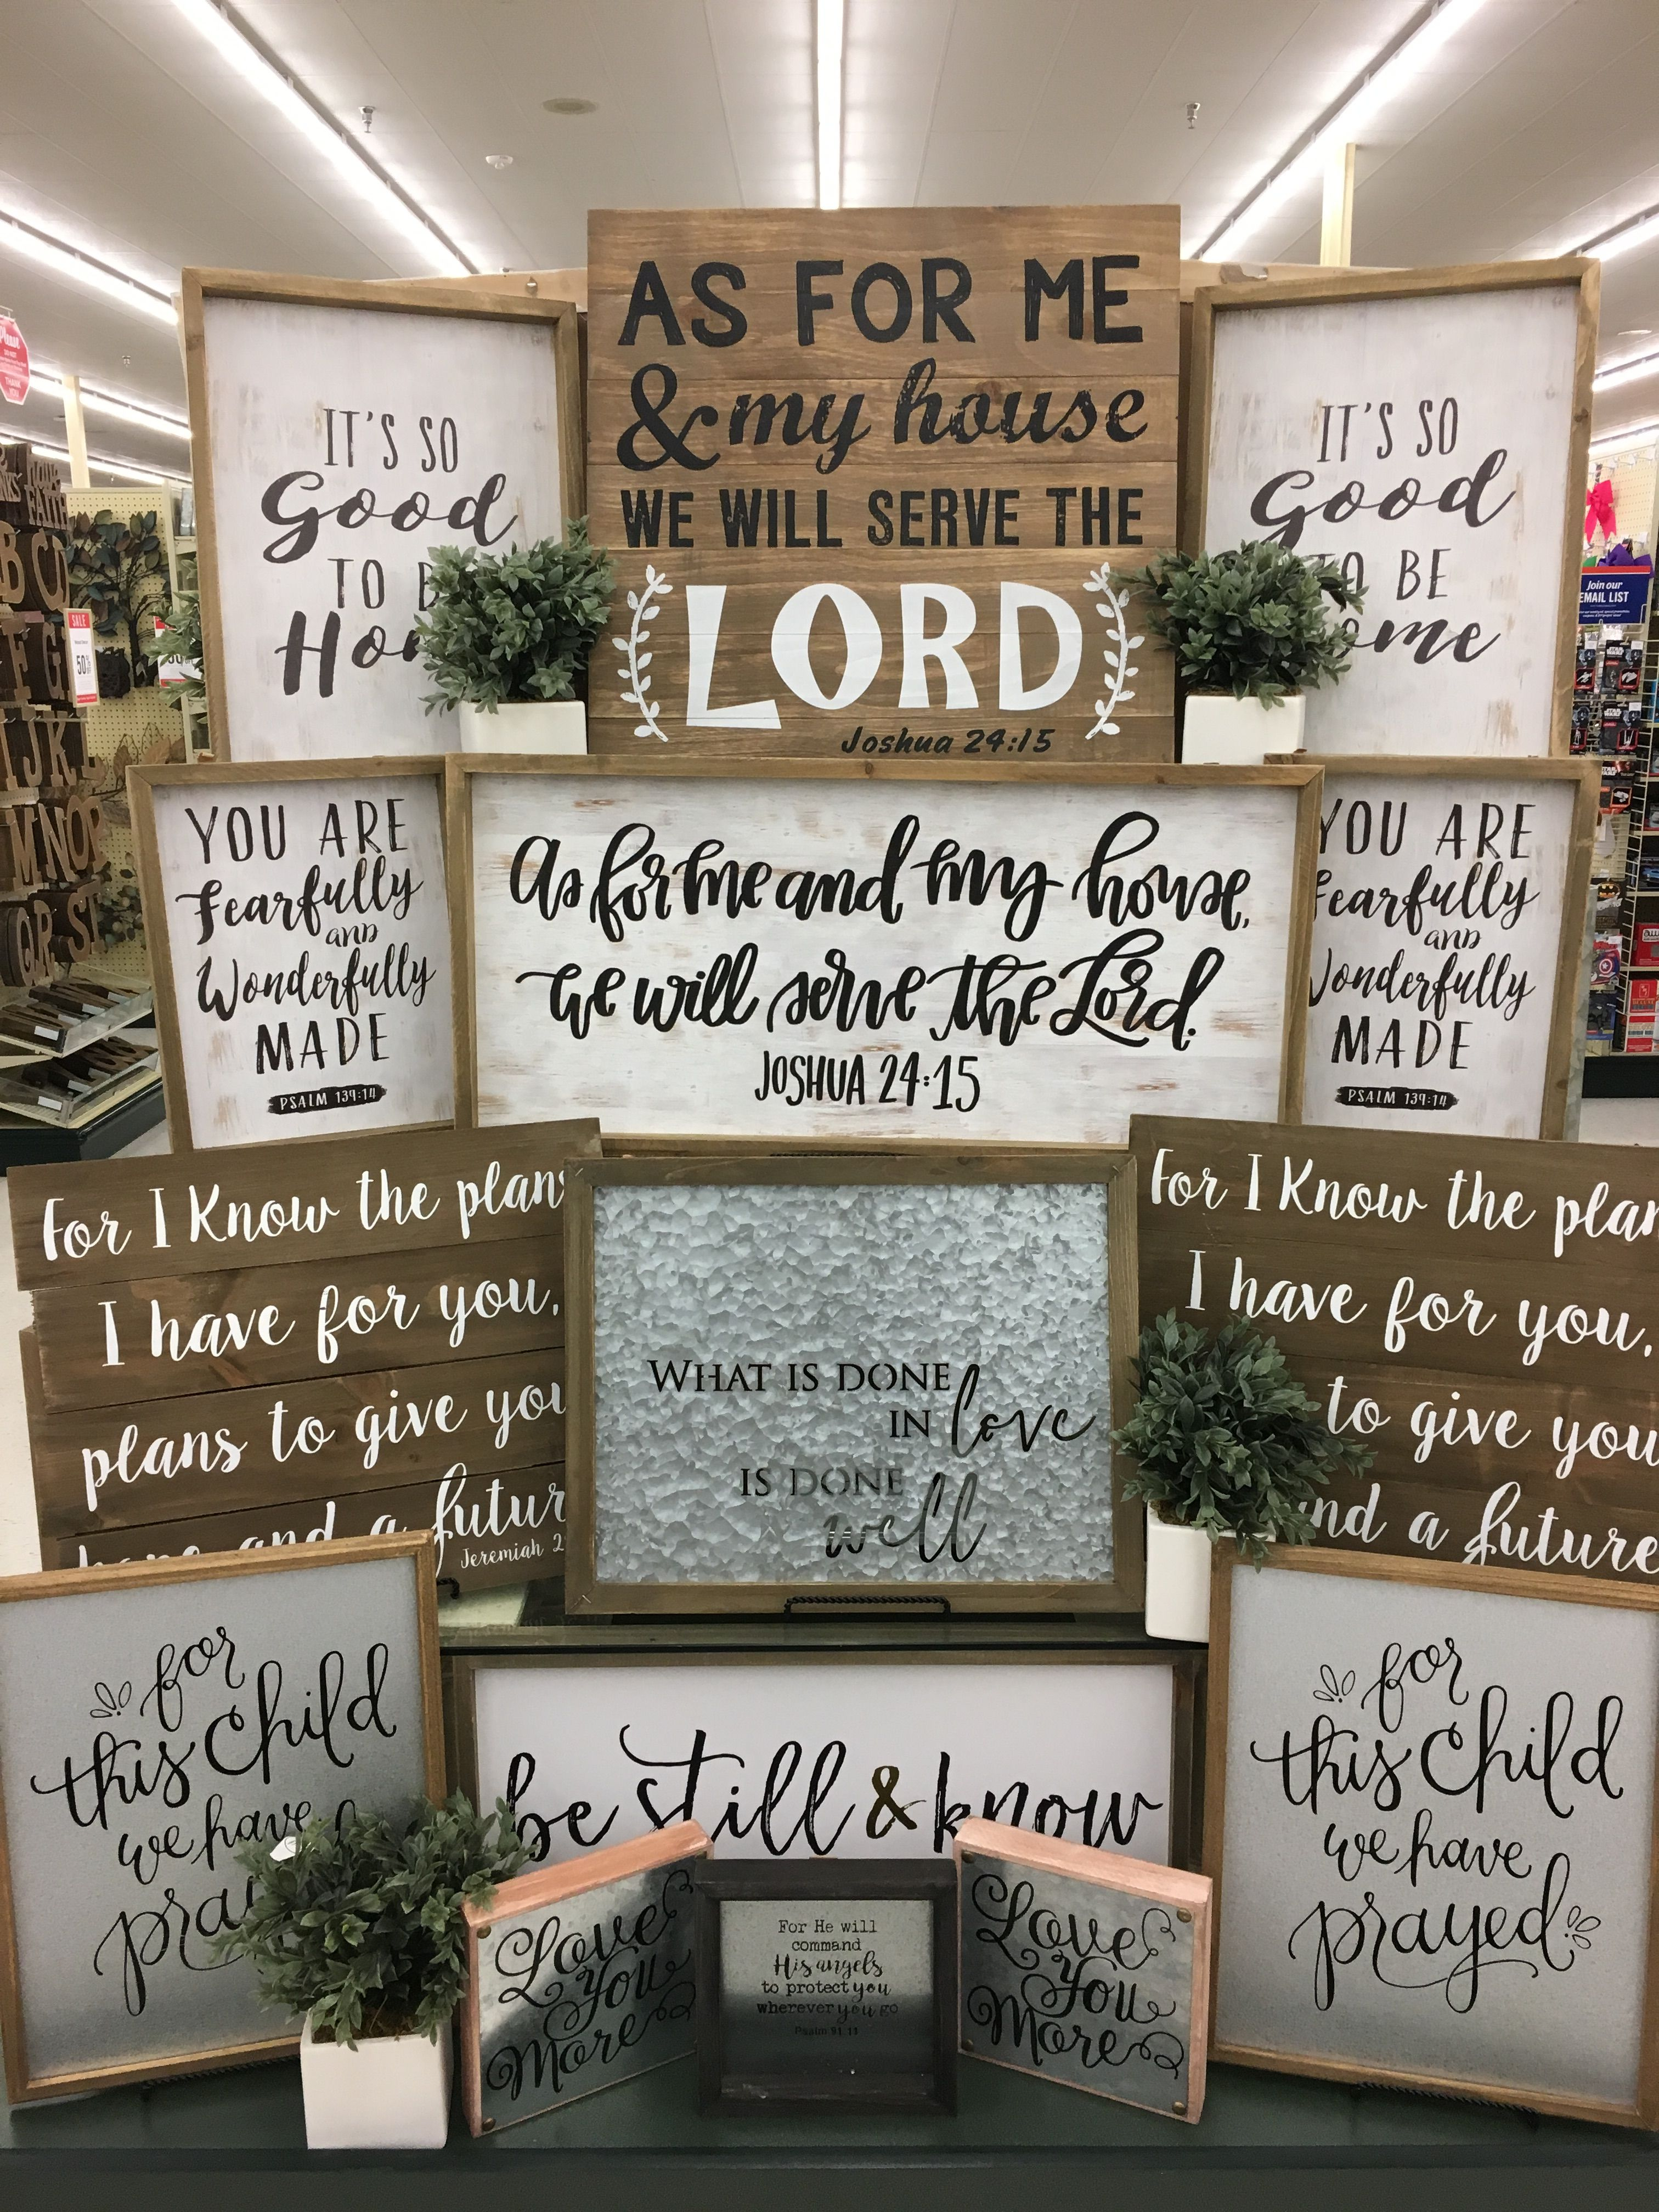 Chalkboard Signs, Hobby Lobby, Farm House, Wood Signs, Wood Projects,  Lobbies, Furniture Decor, Wall Decor, Wooden Signs